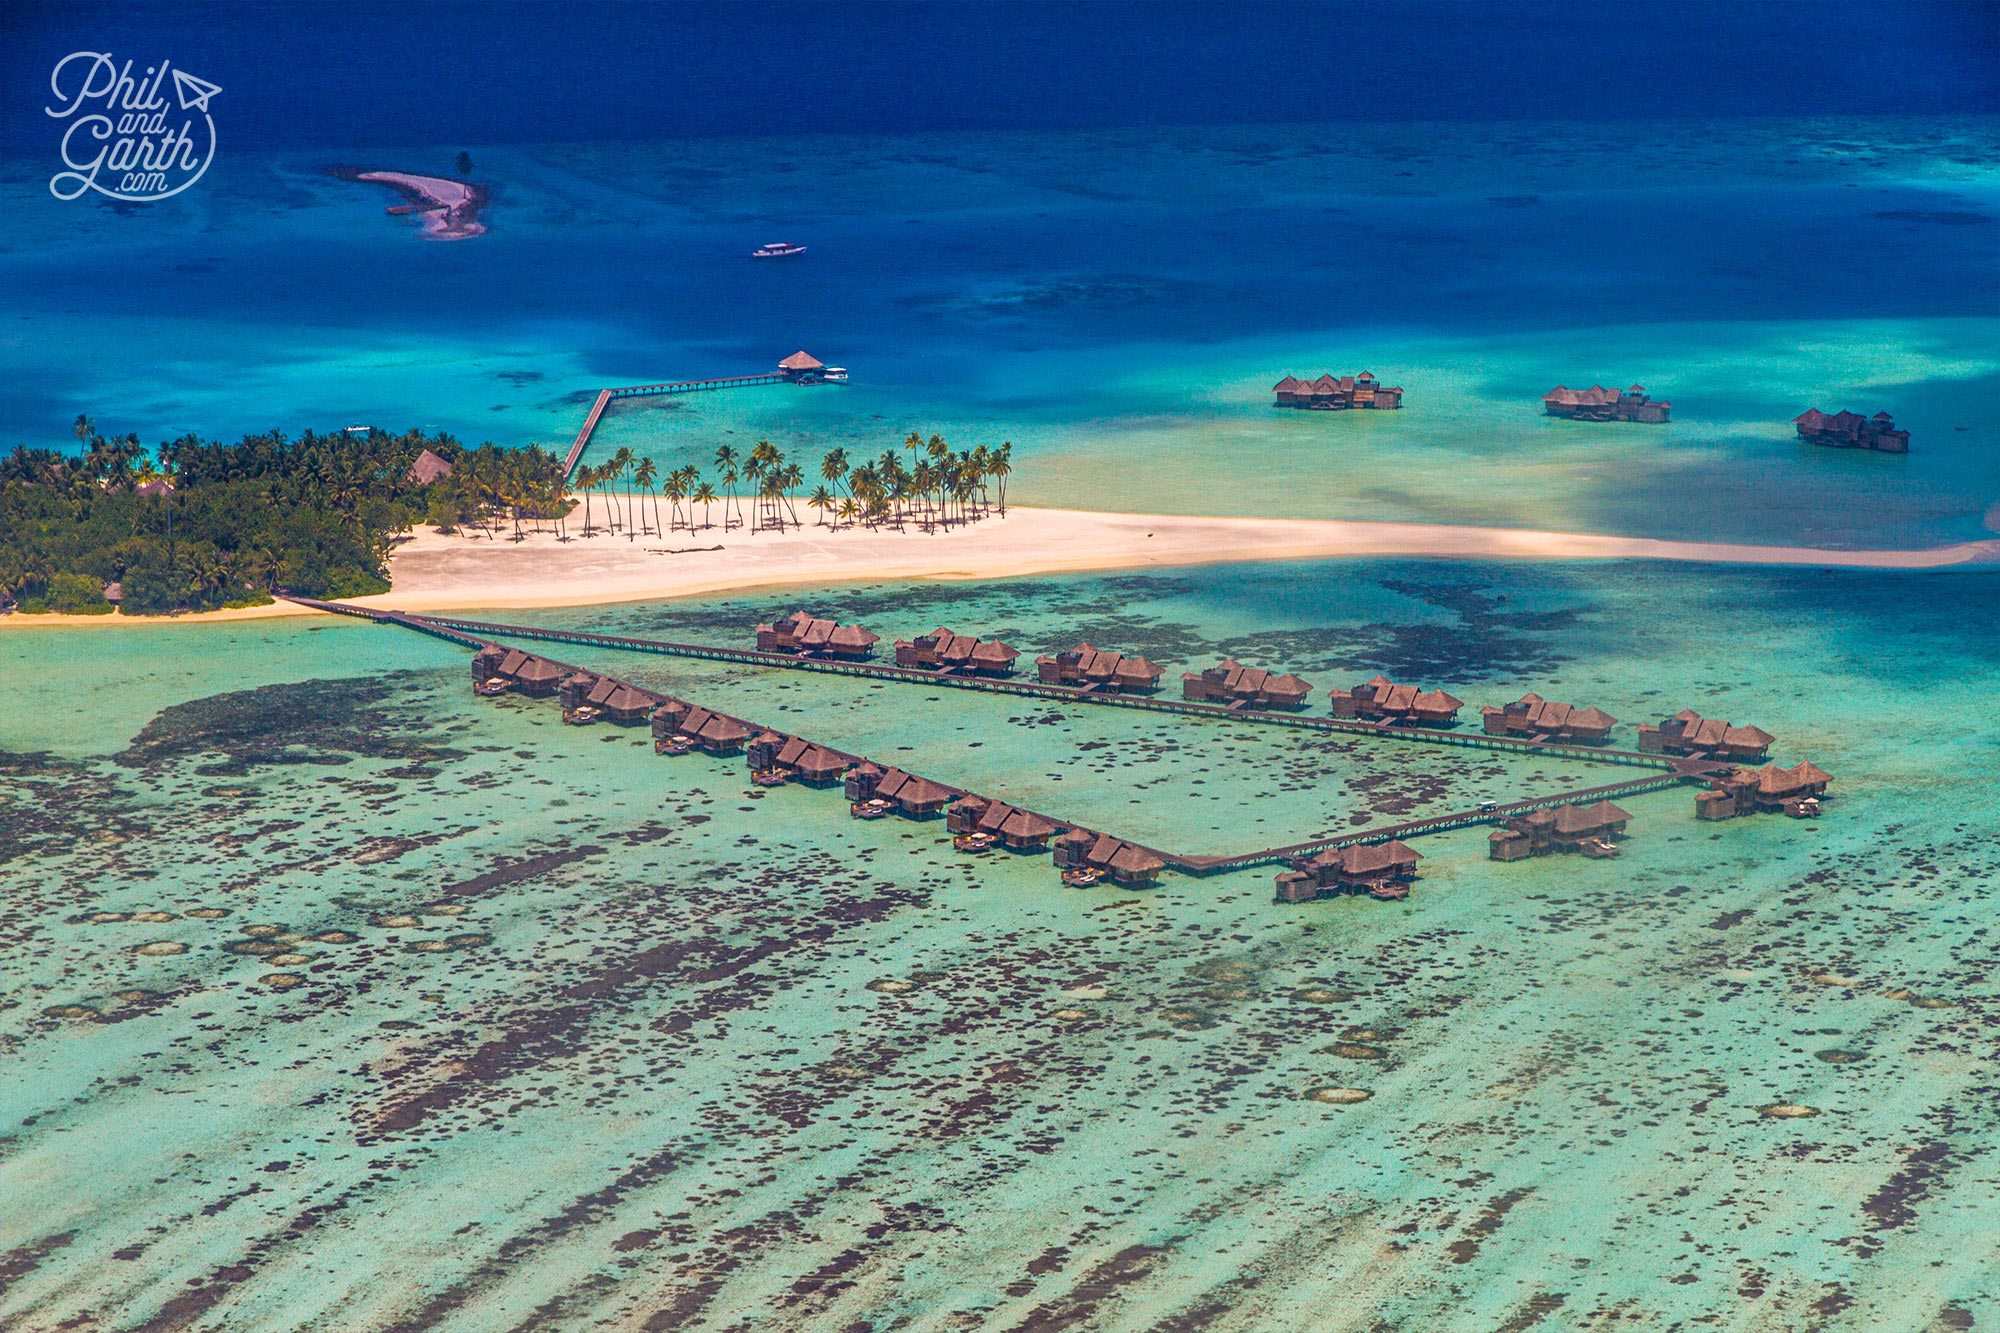 So many iconic over water villas and bungalows in the Maldives